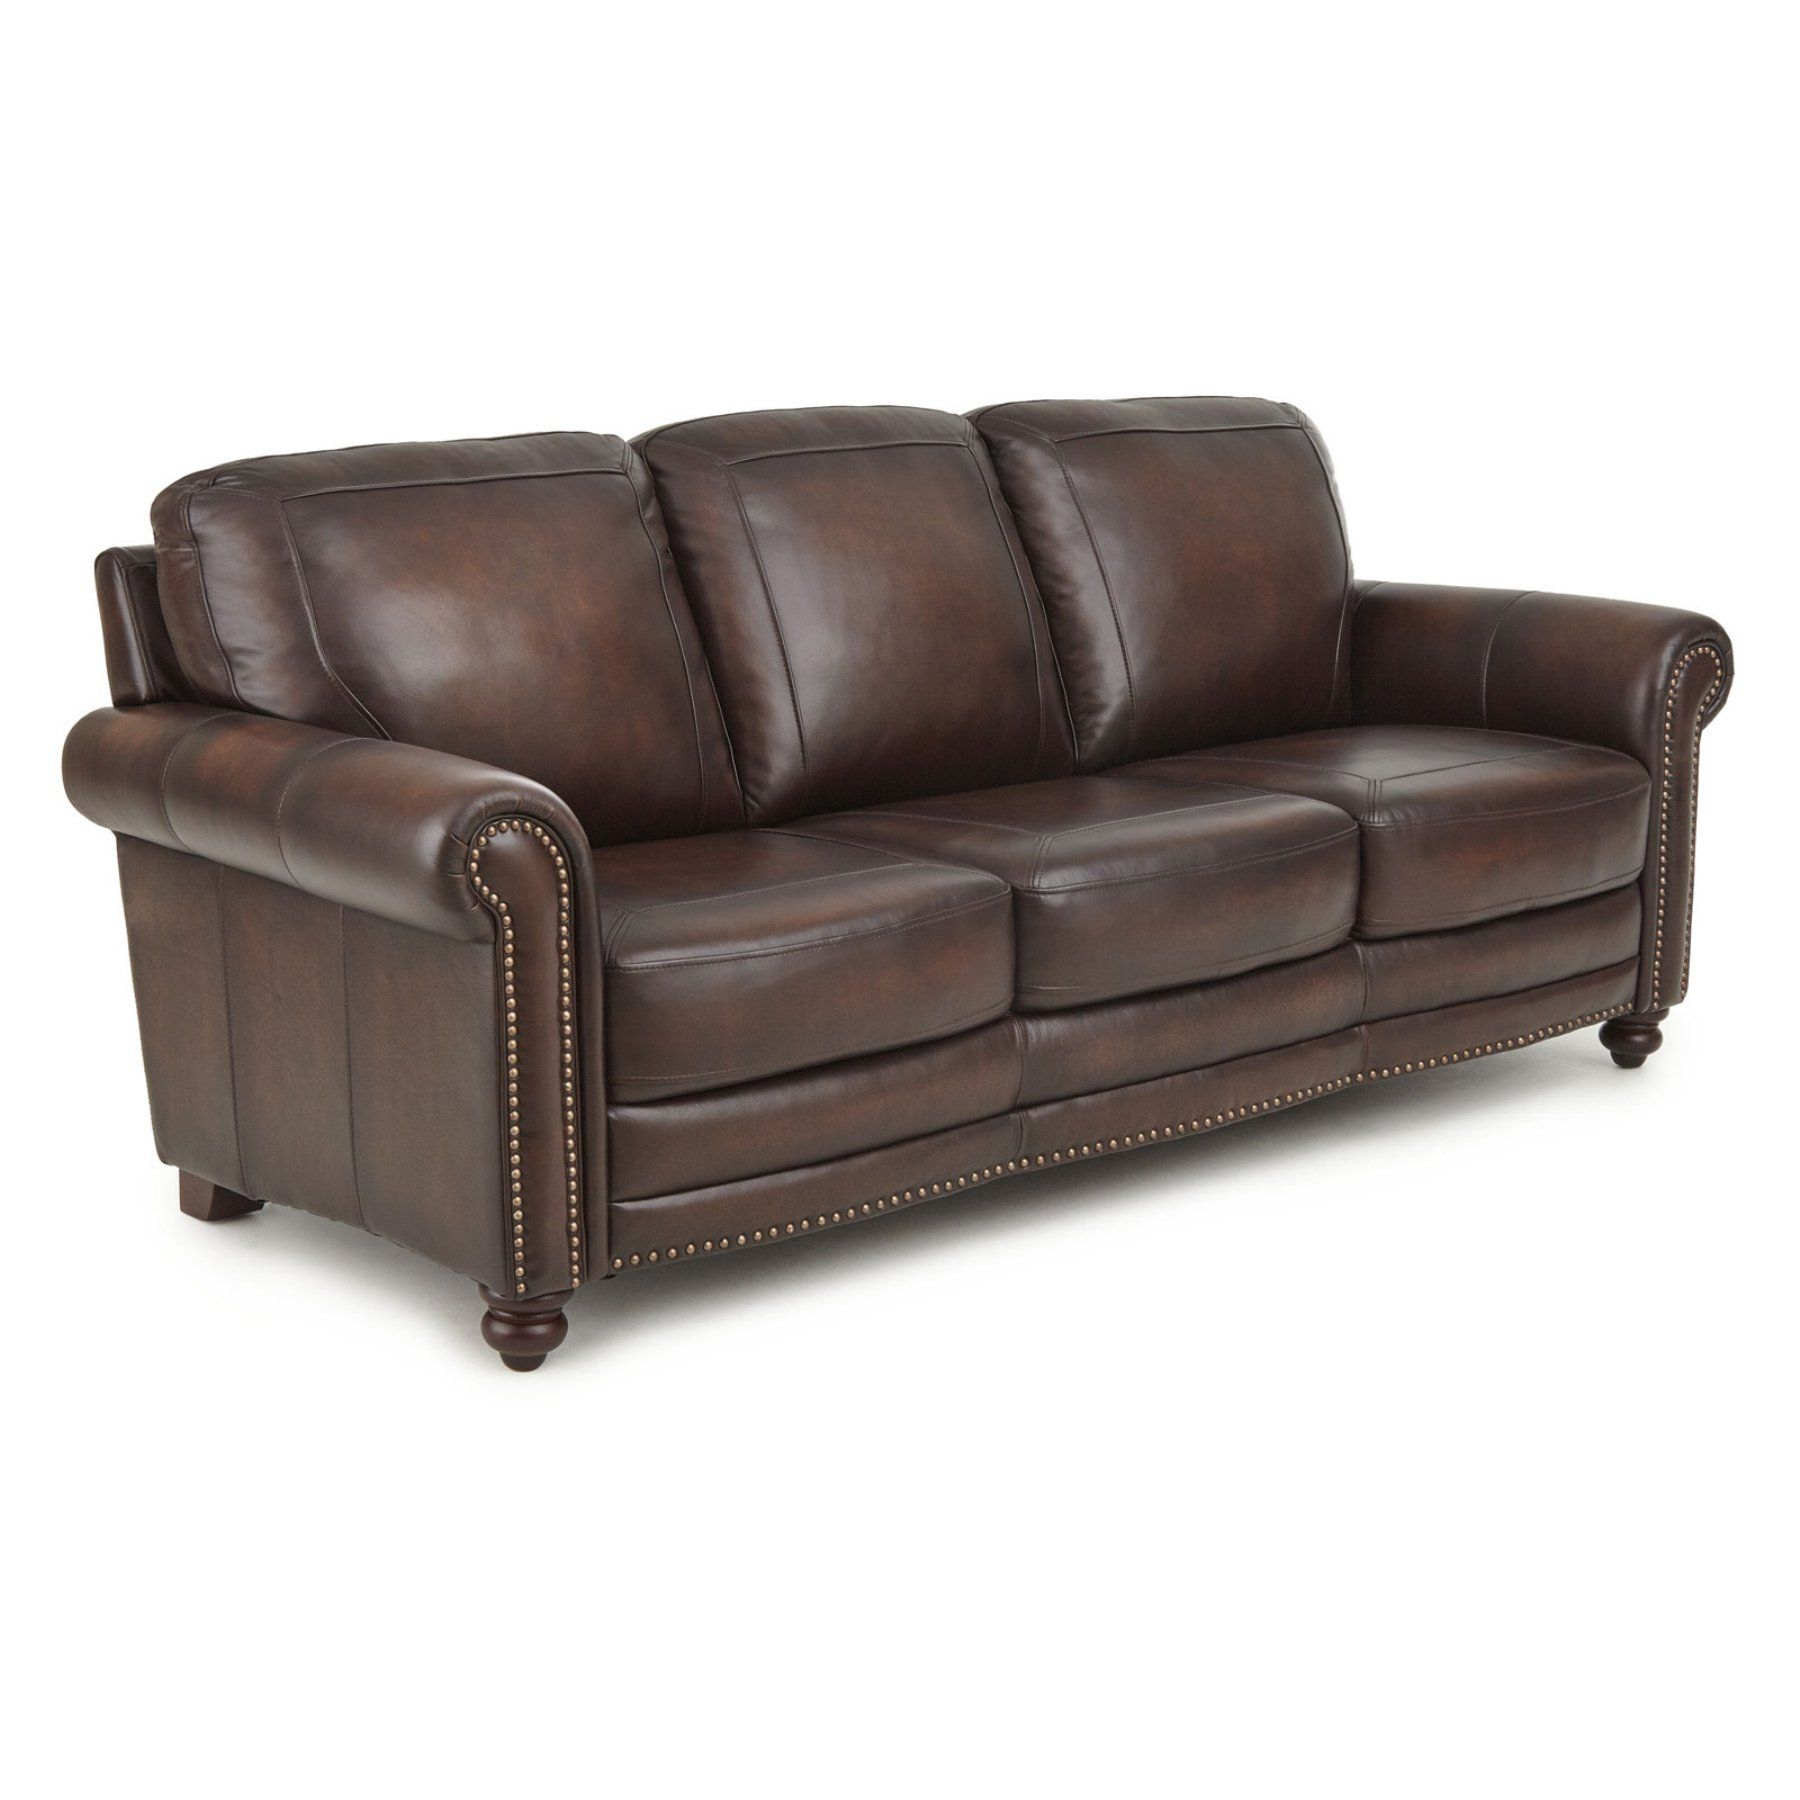 Steve Silver Co Ellington Leather Sofa Et900s Products